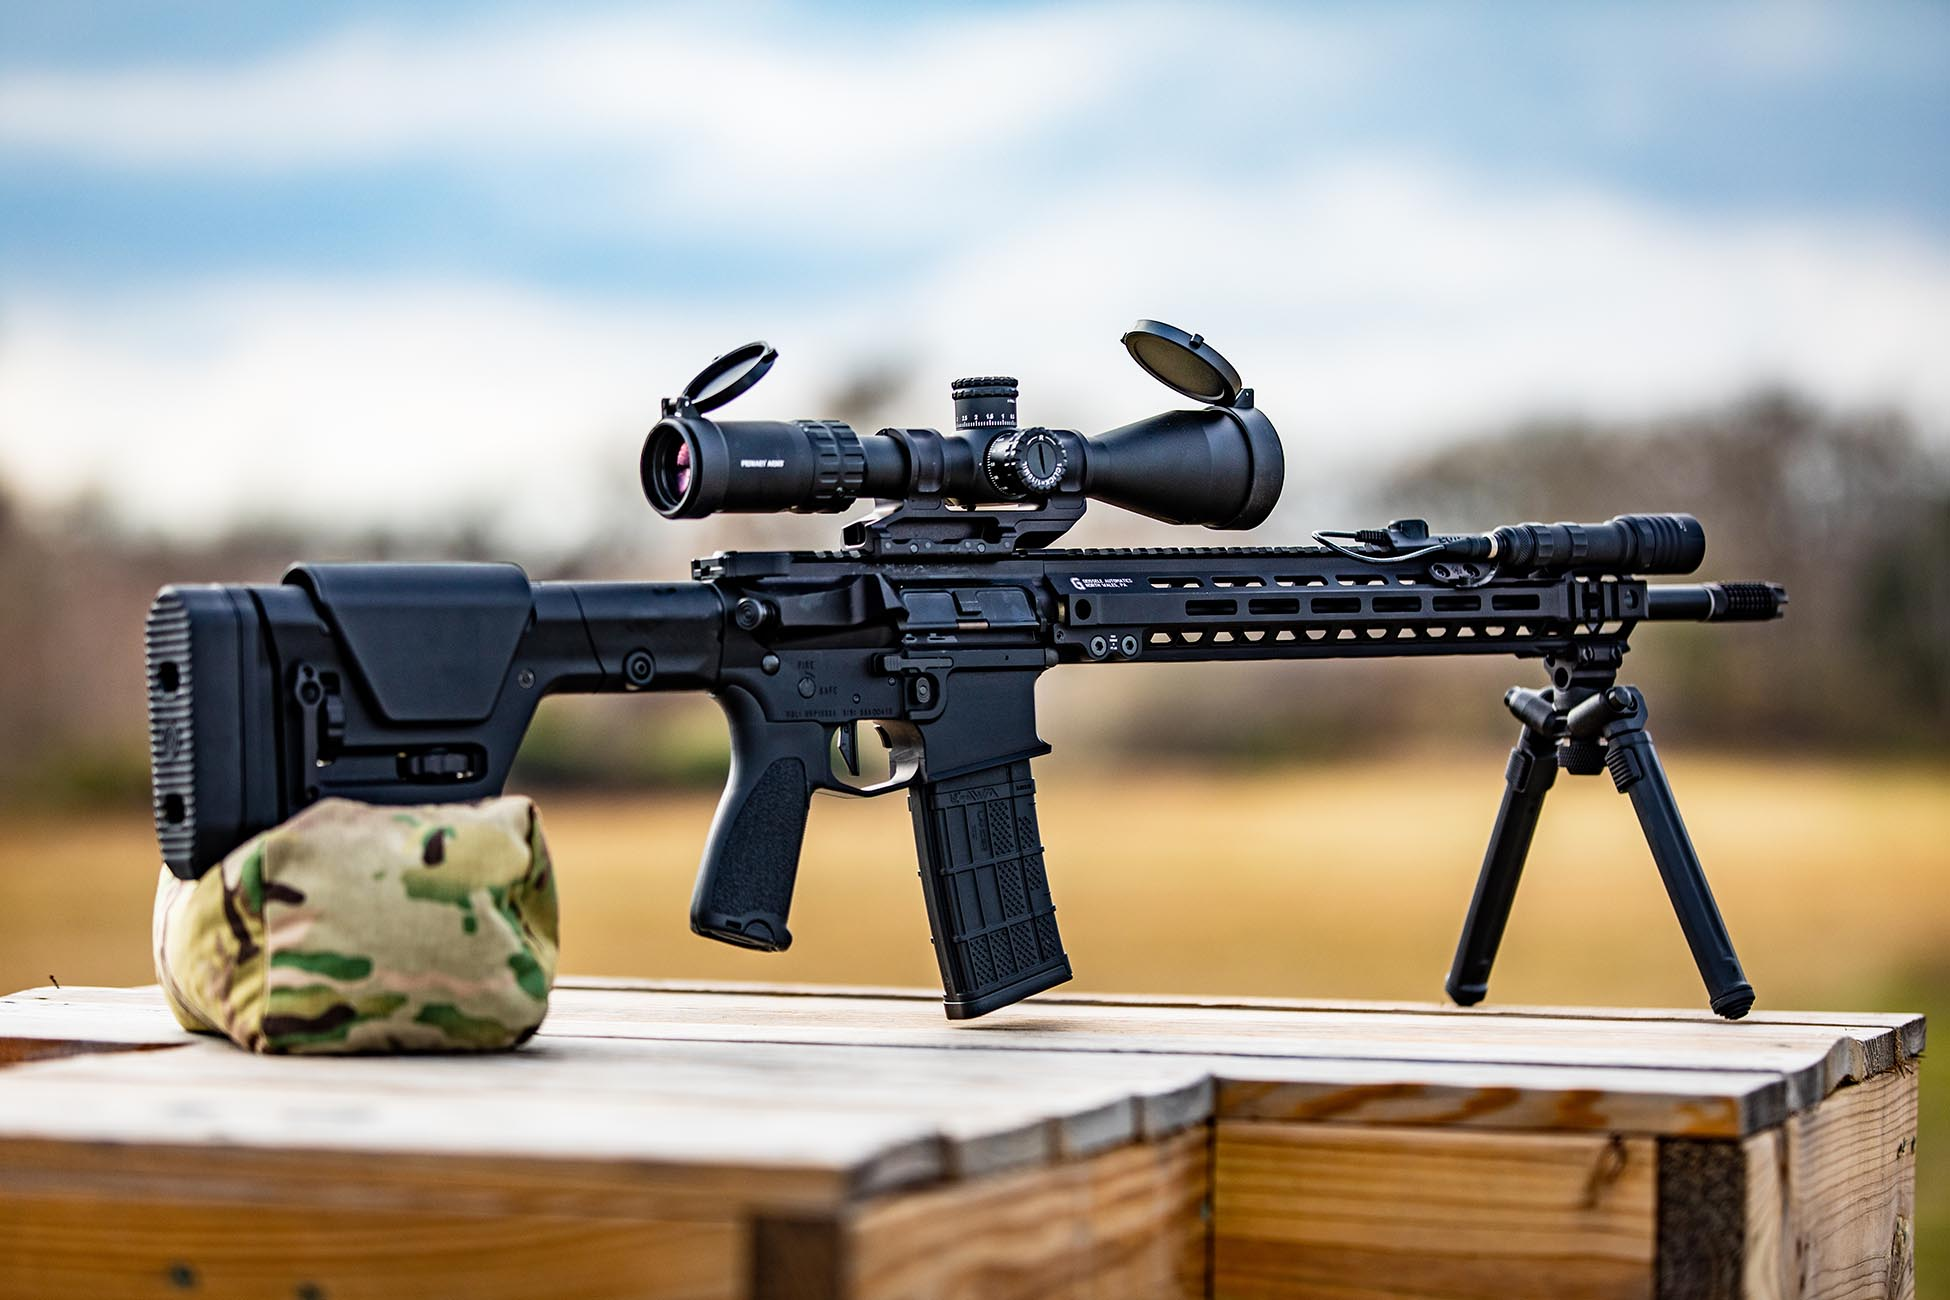 Magpul PRS Rifle Stock installed on a designated marksman rifle for accurate long range shooting